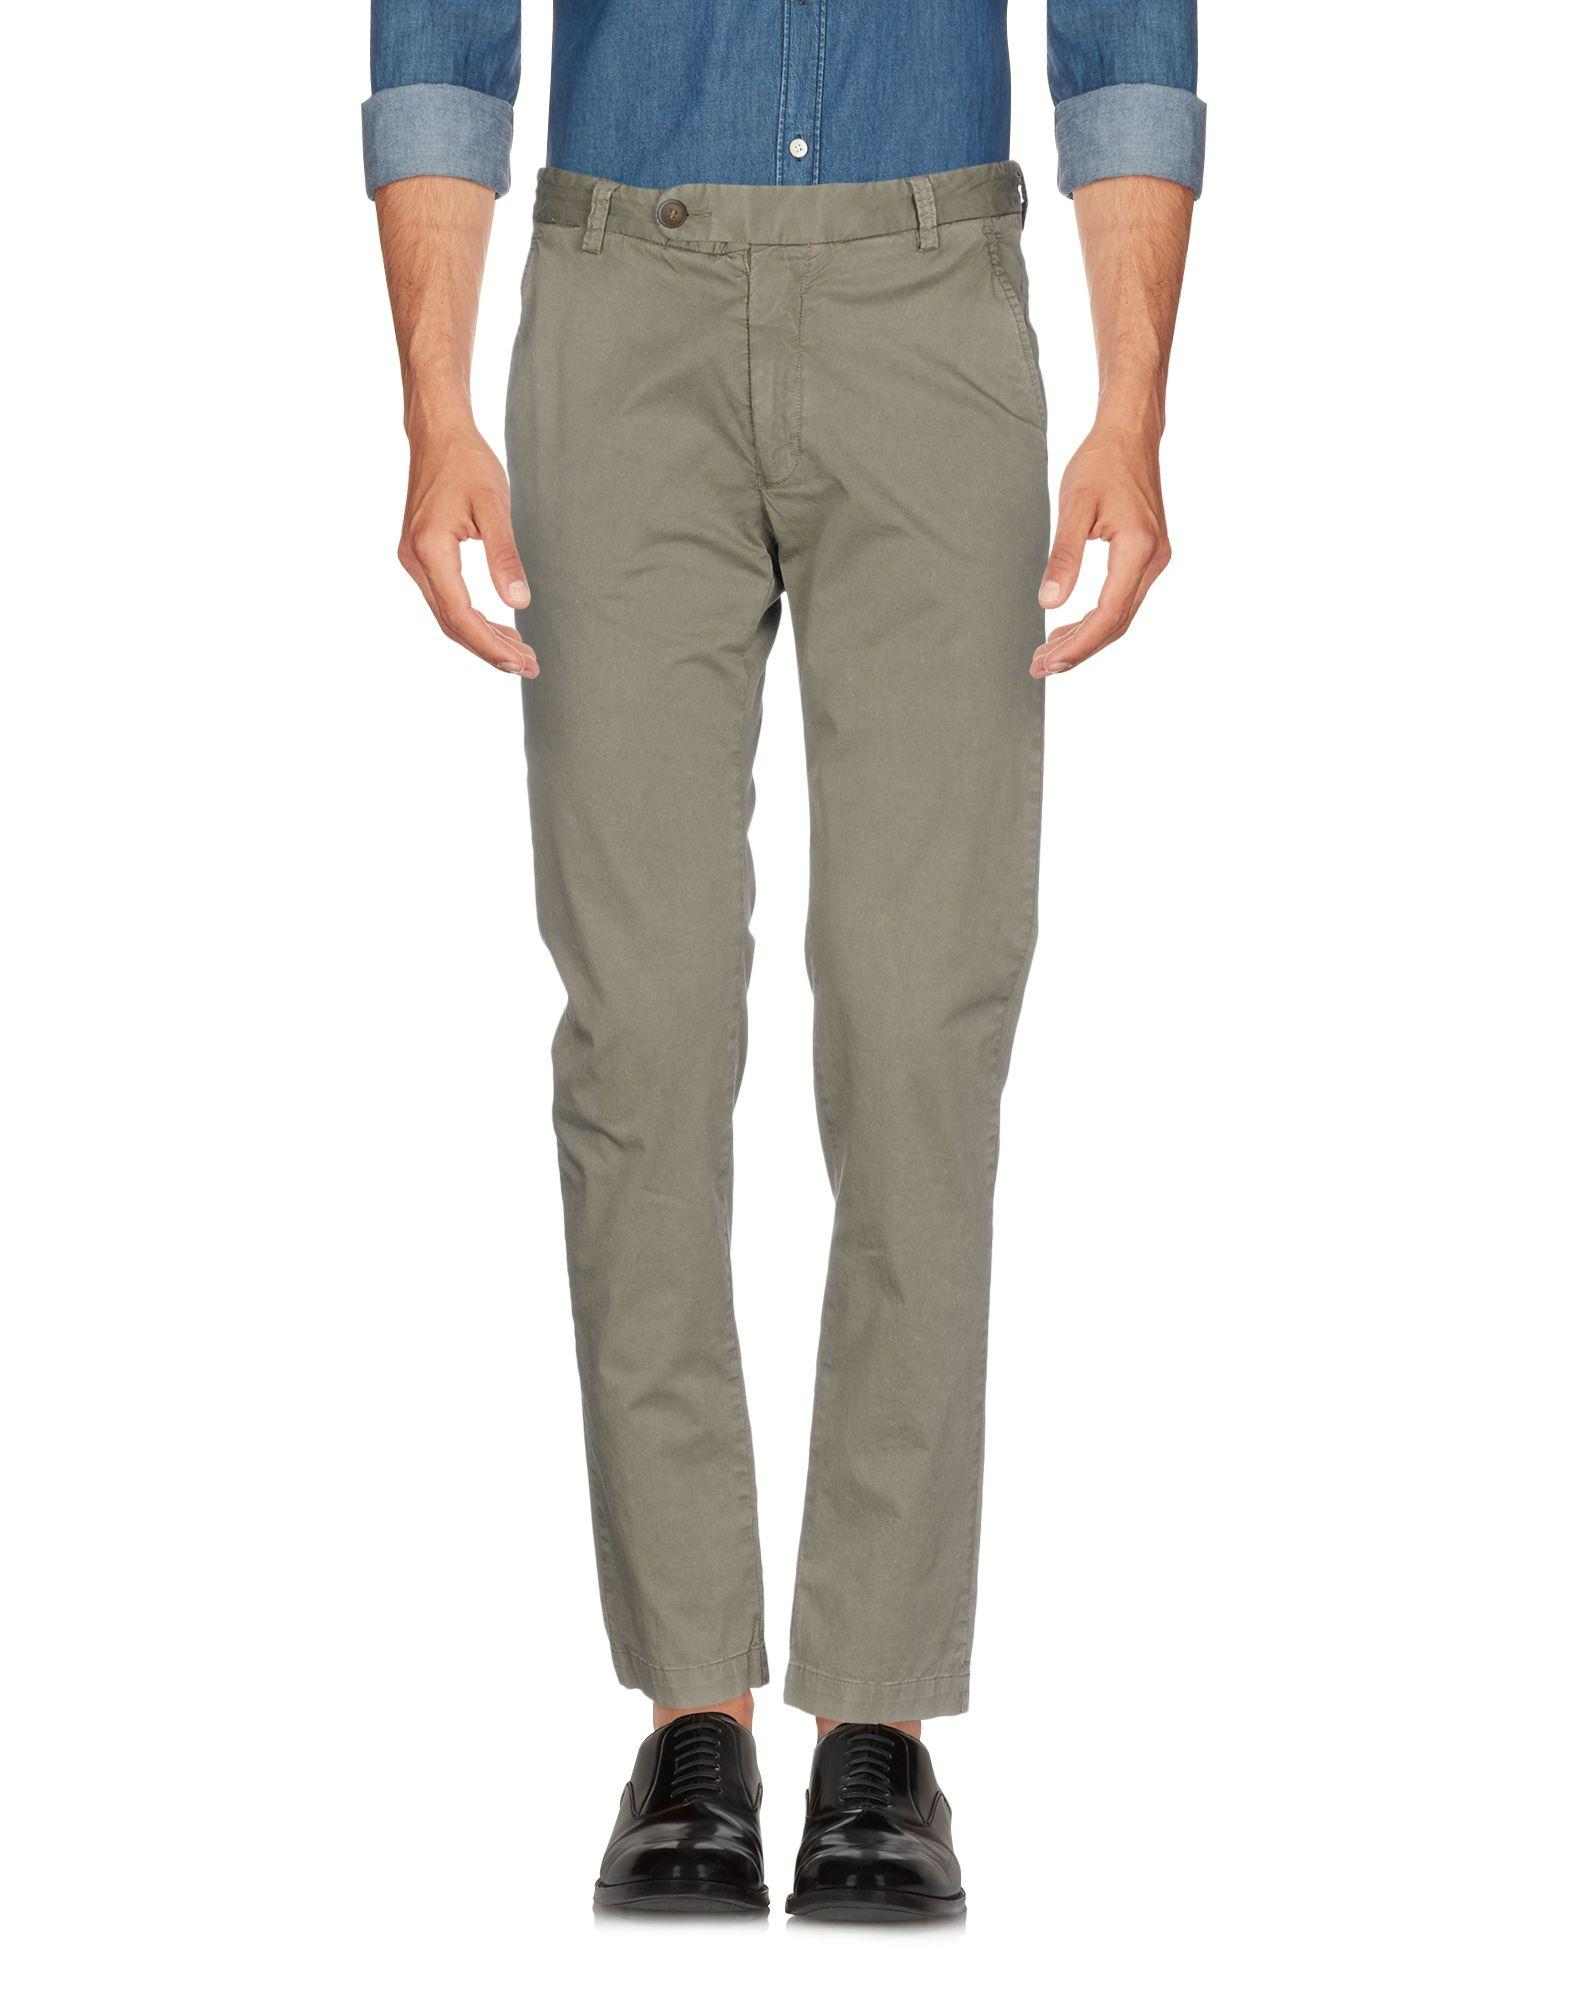 Authentic Original Vintage Style Casual Pants In Military Green